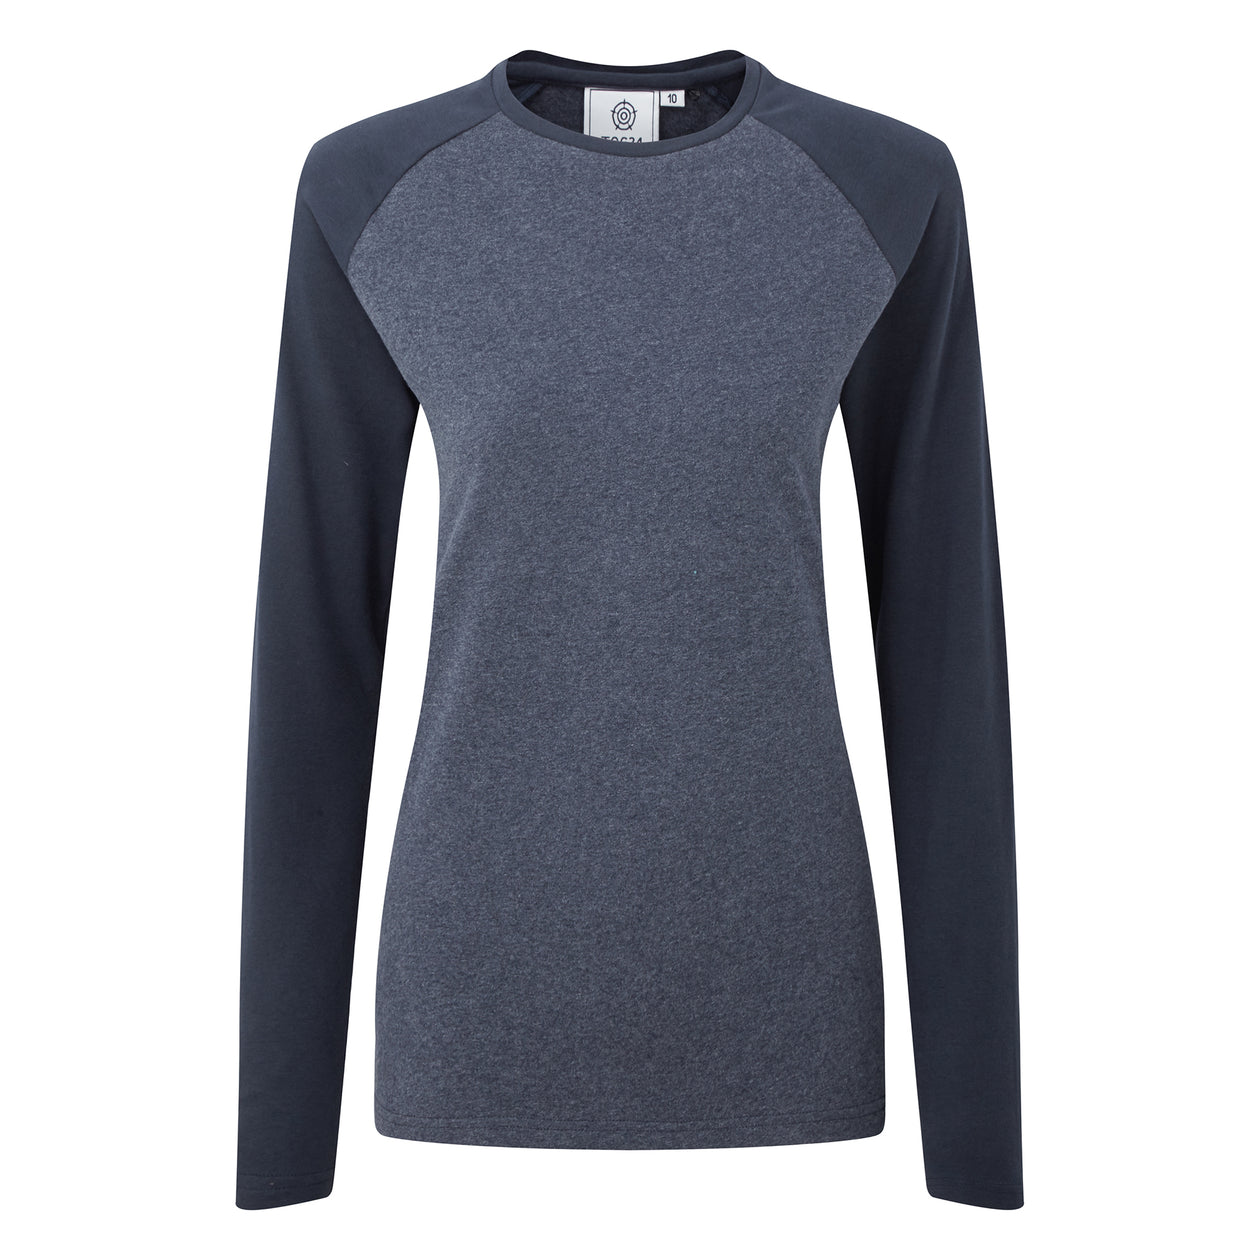 Thirn Womens Long Sleeve Raglan T-Shirt - Indigo Marl/Dark Indigo image 4